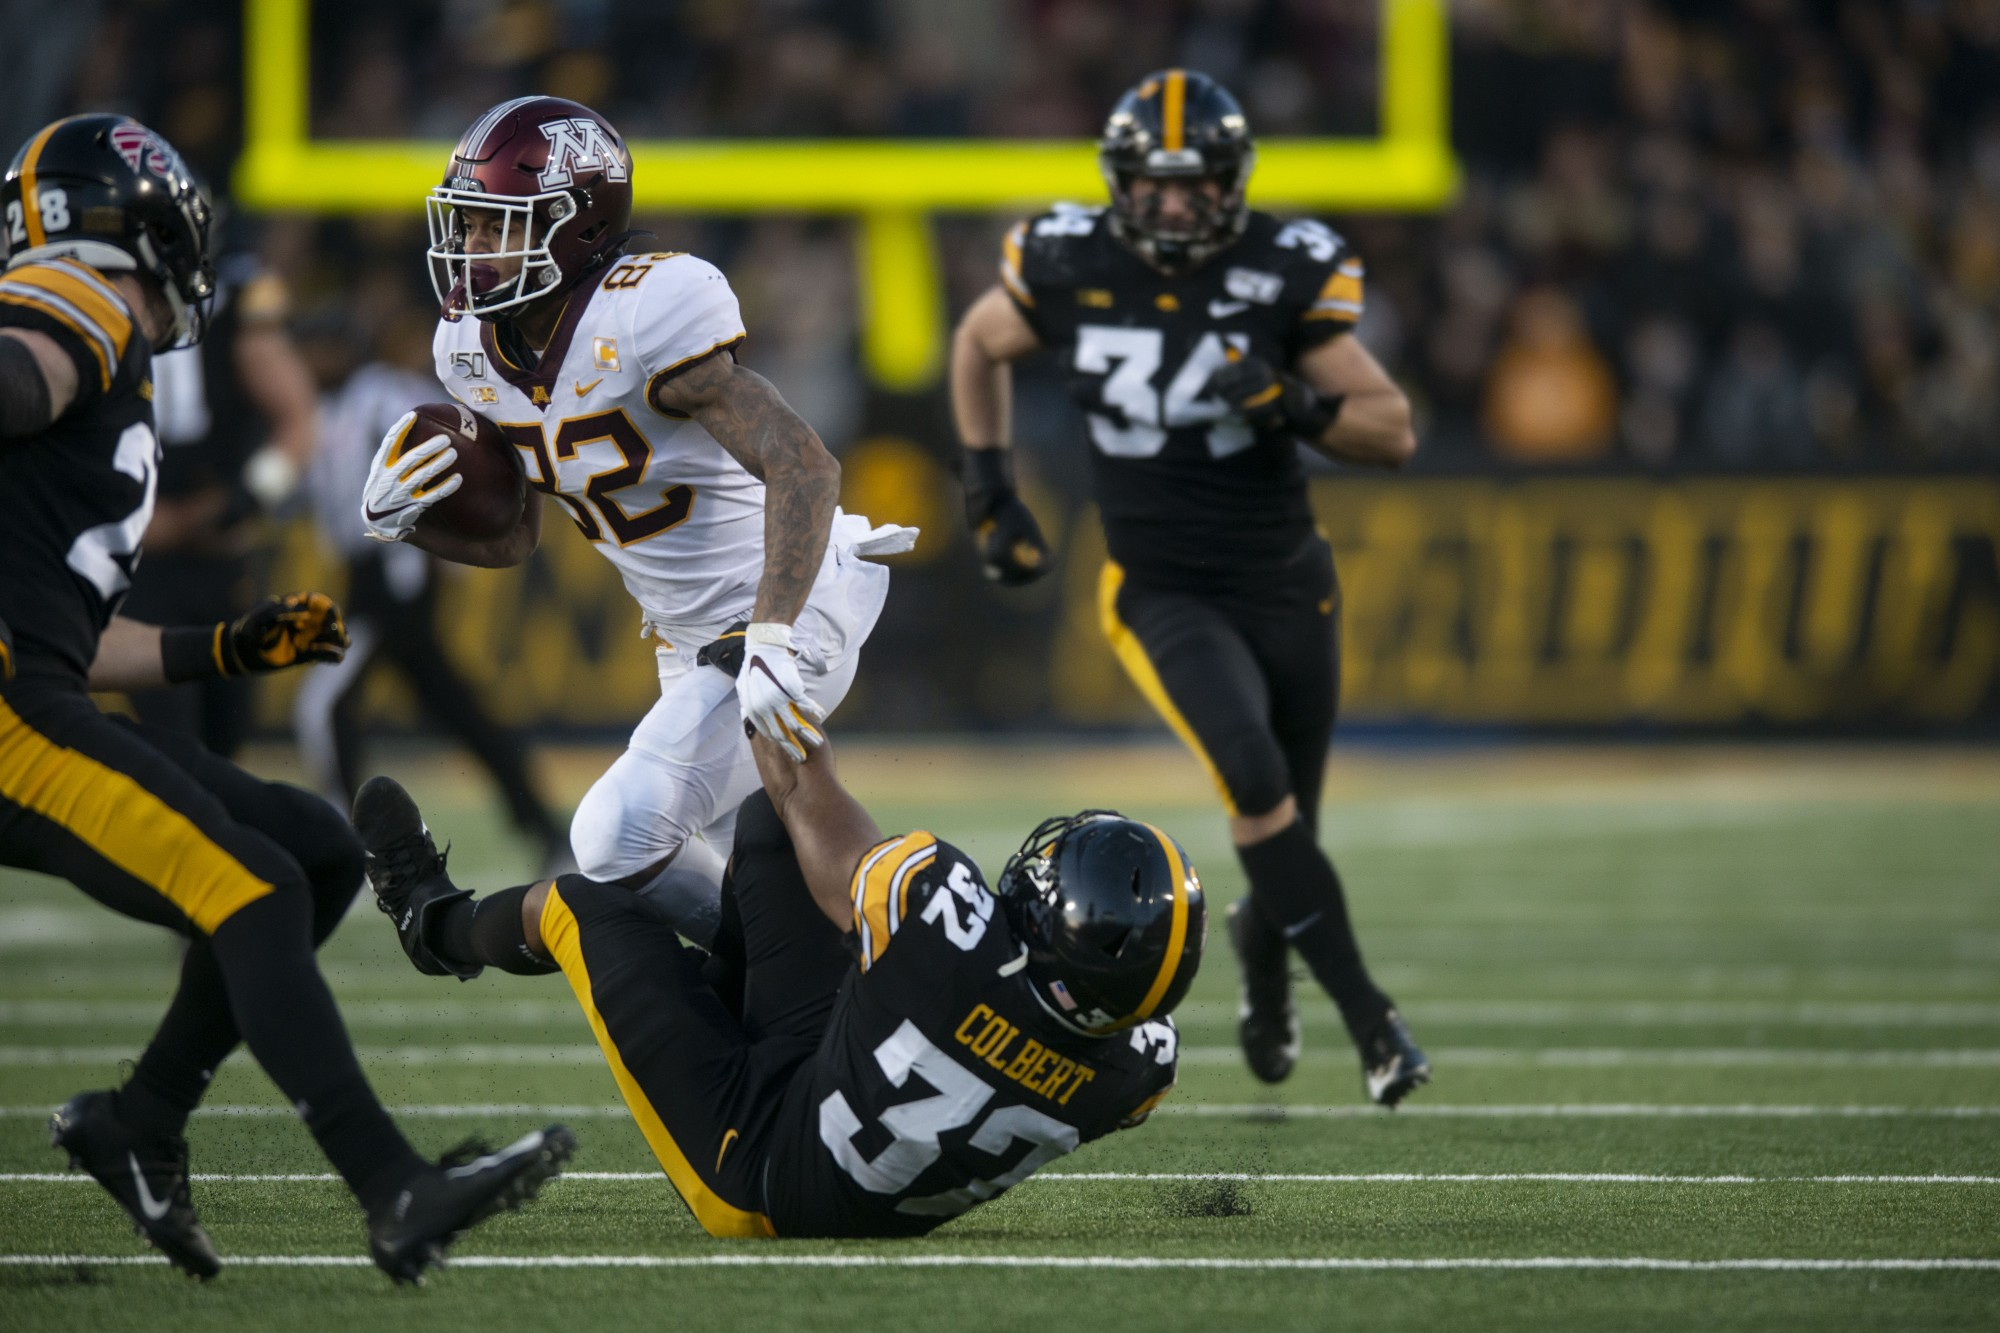 Wide receiver Demetrius Douglas carries the ball at Kinnick Stadium on Saturday, Nov. 16. Iowa defeated the Gophers 23-19 ending their winning streak and bringing their record to 9-1.